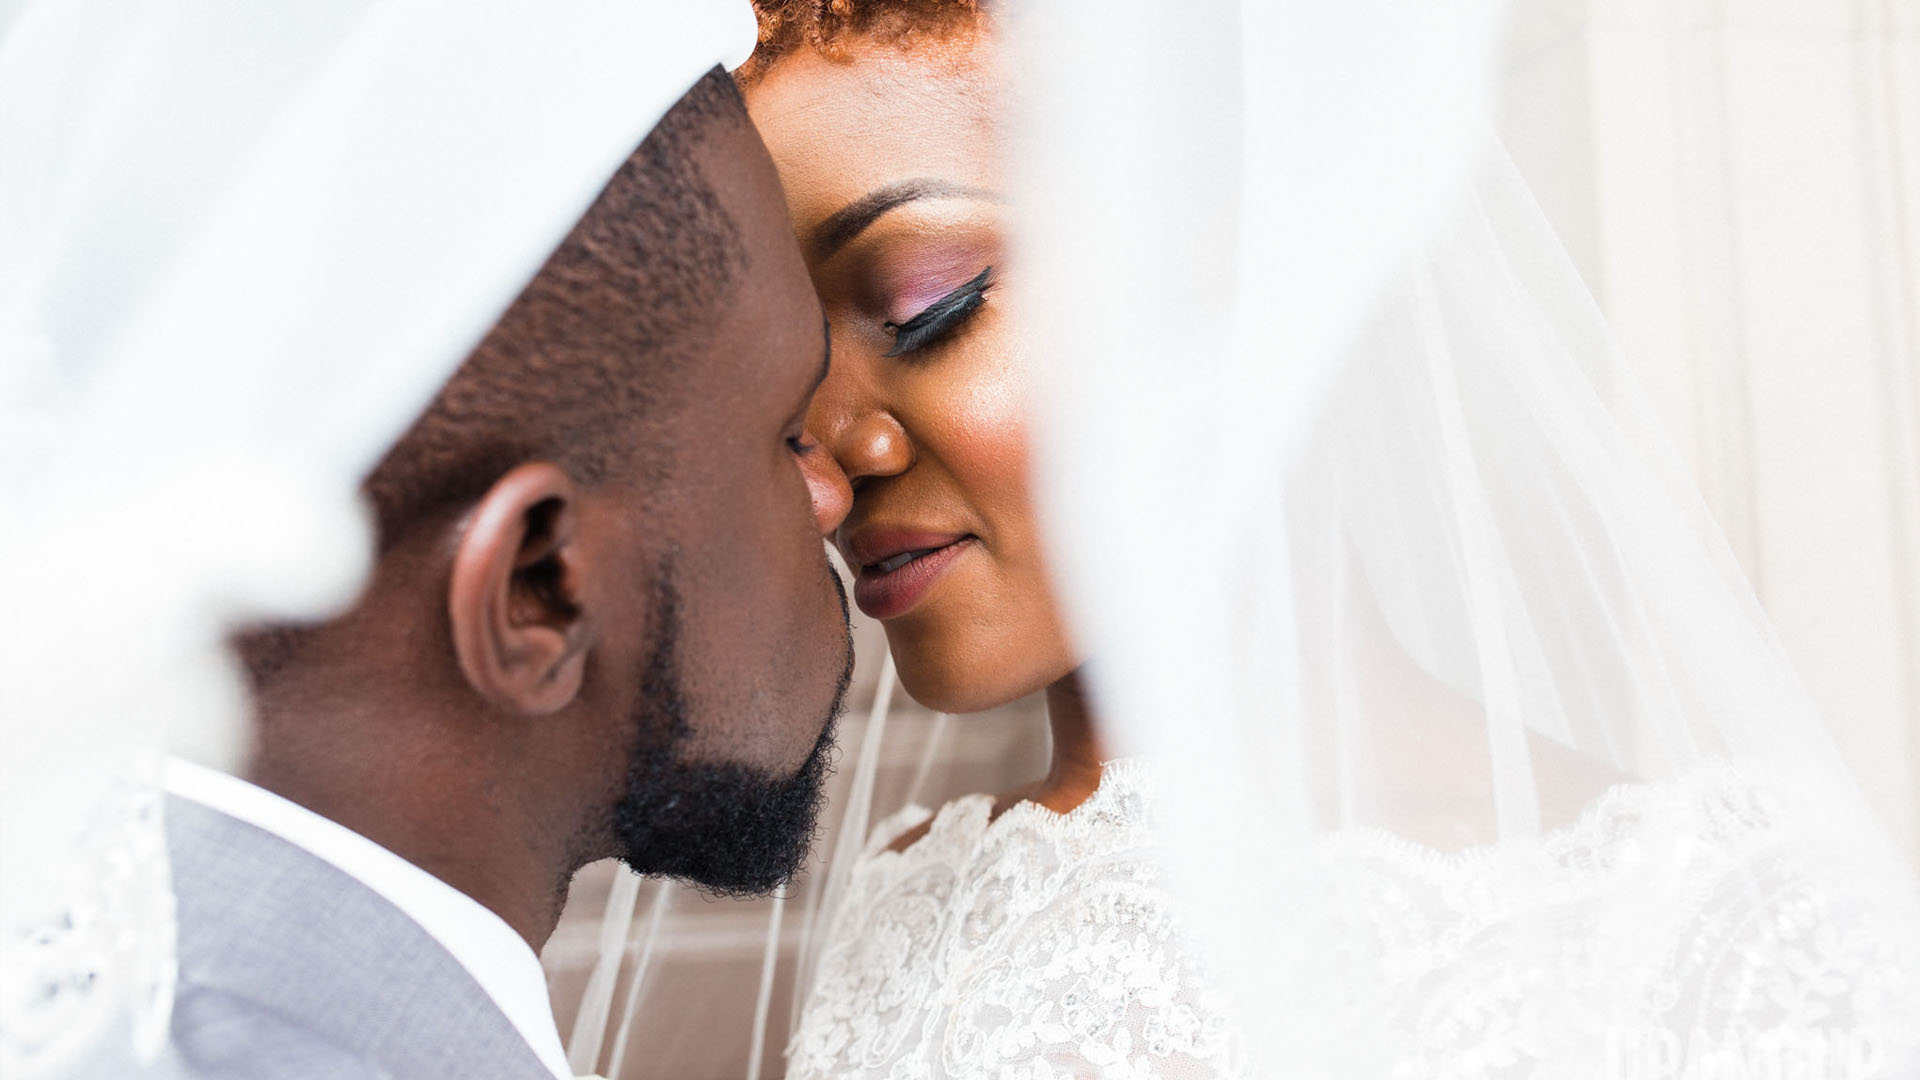 Joseph + Chiamaka | Atlanta, Georgia | The Temple